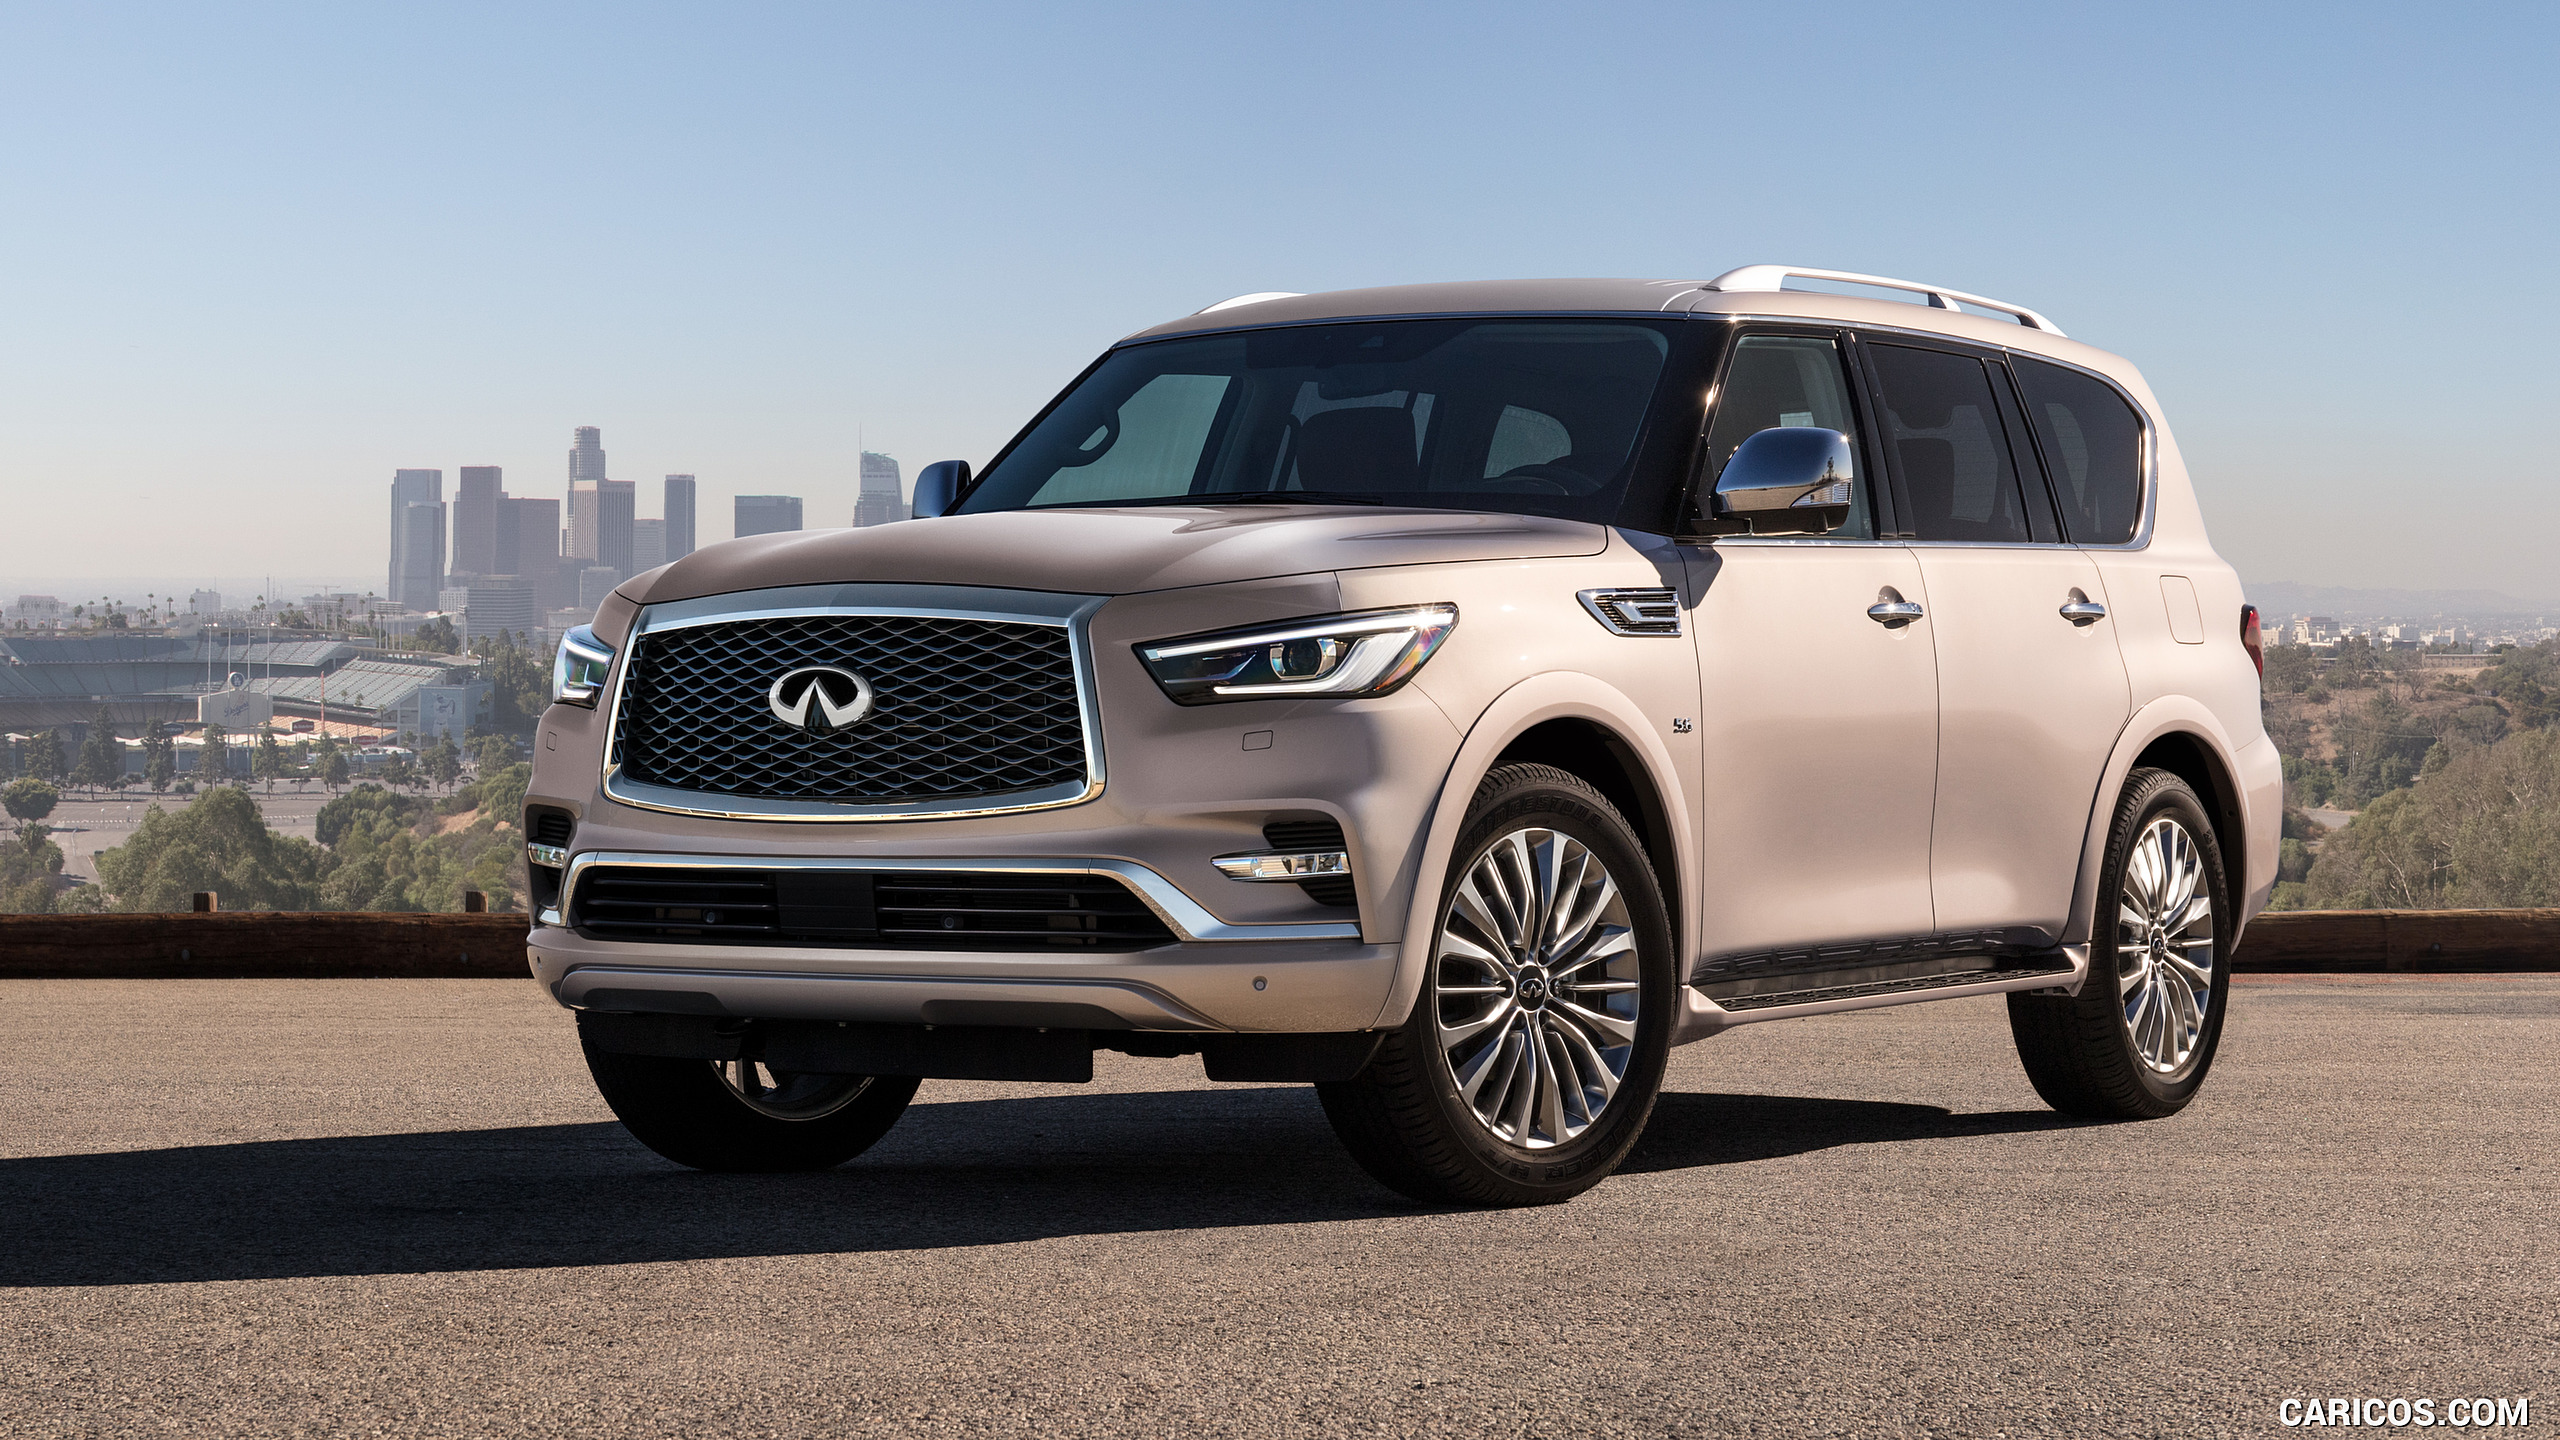 2560x1440 - Infiniti QX80 Wallpapers 29